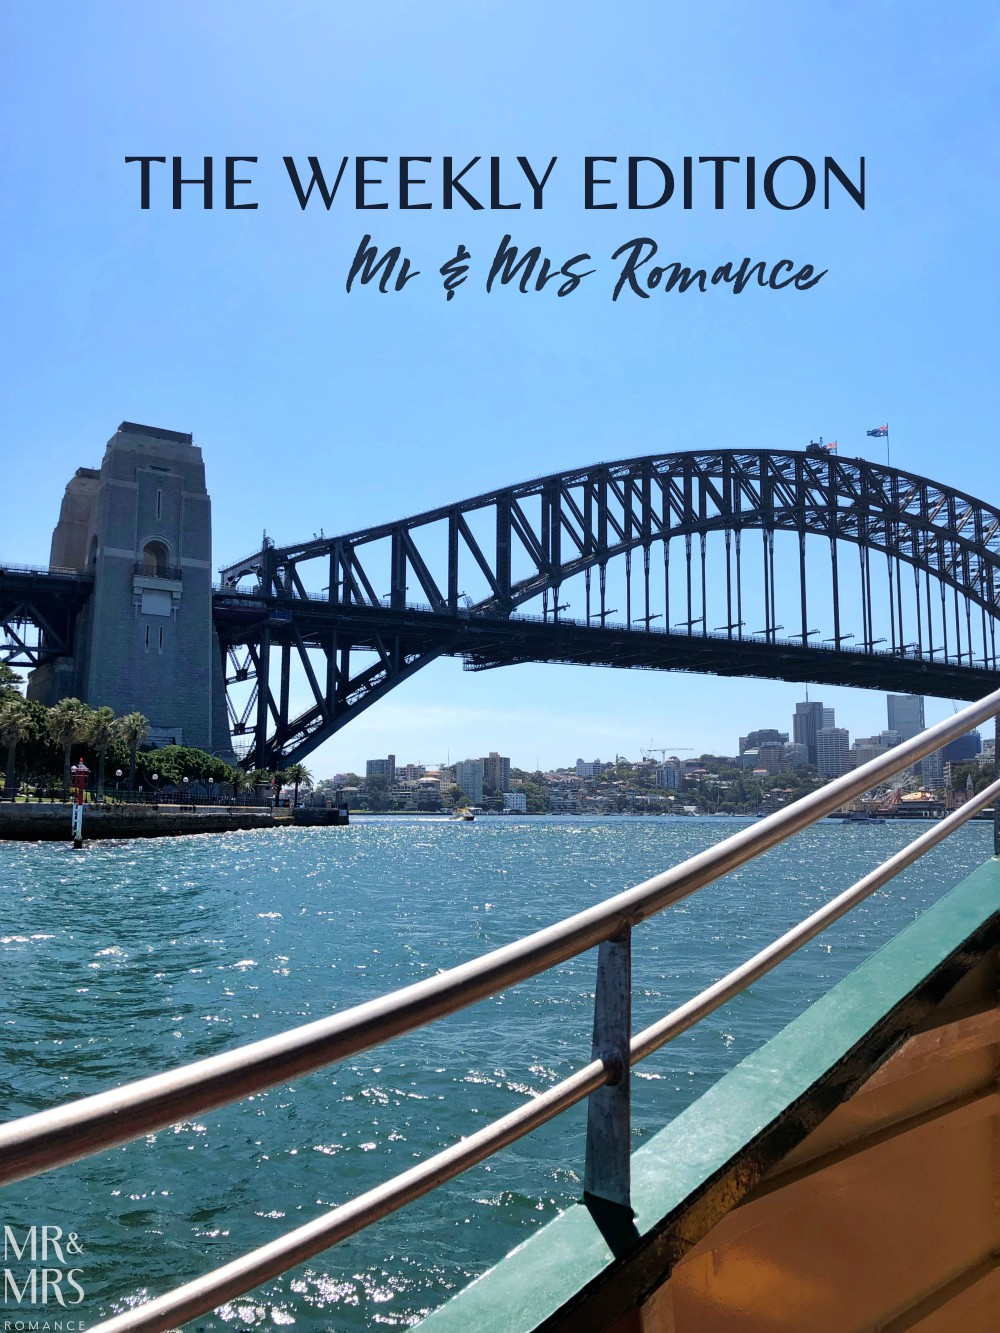 Mr & Mrs Romance - The Weekly Edition - Italy in the Inner West, NatGeo river trips and a day at the beach